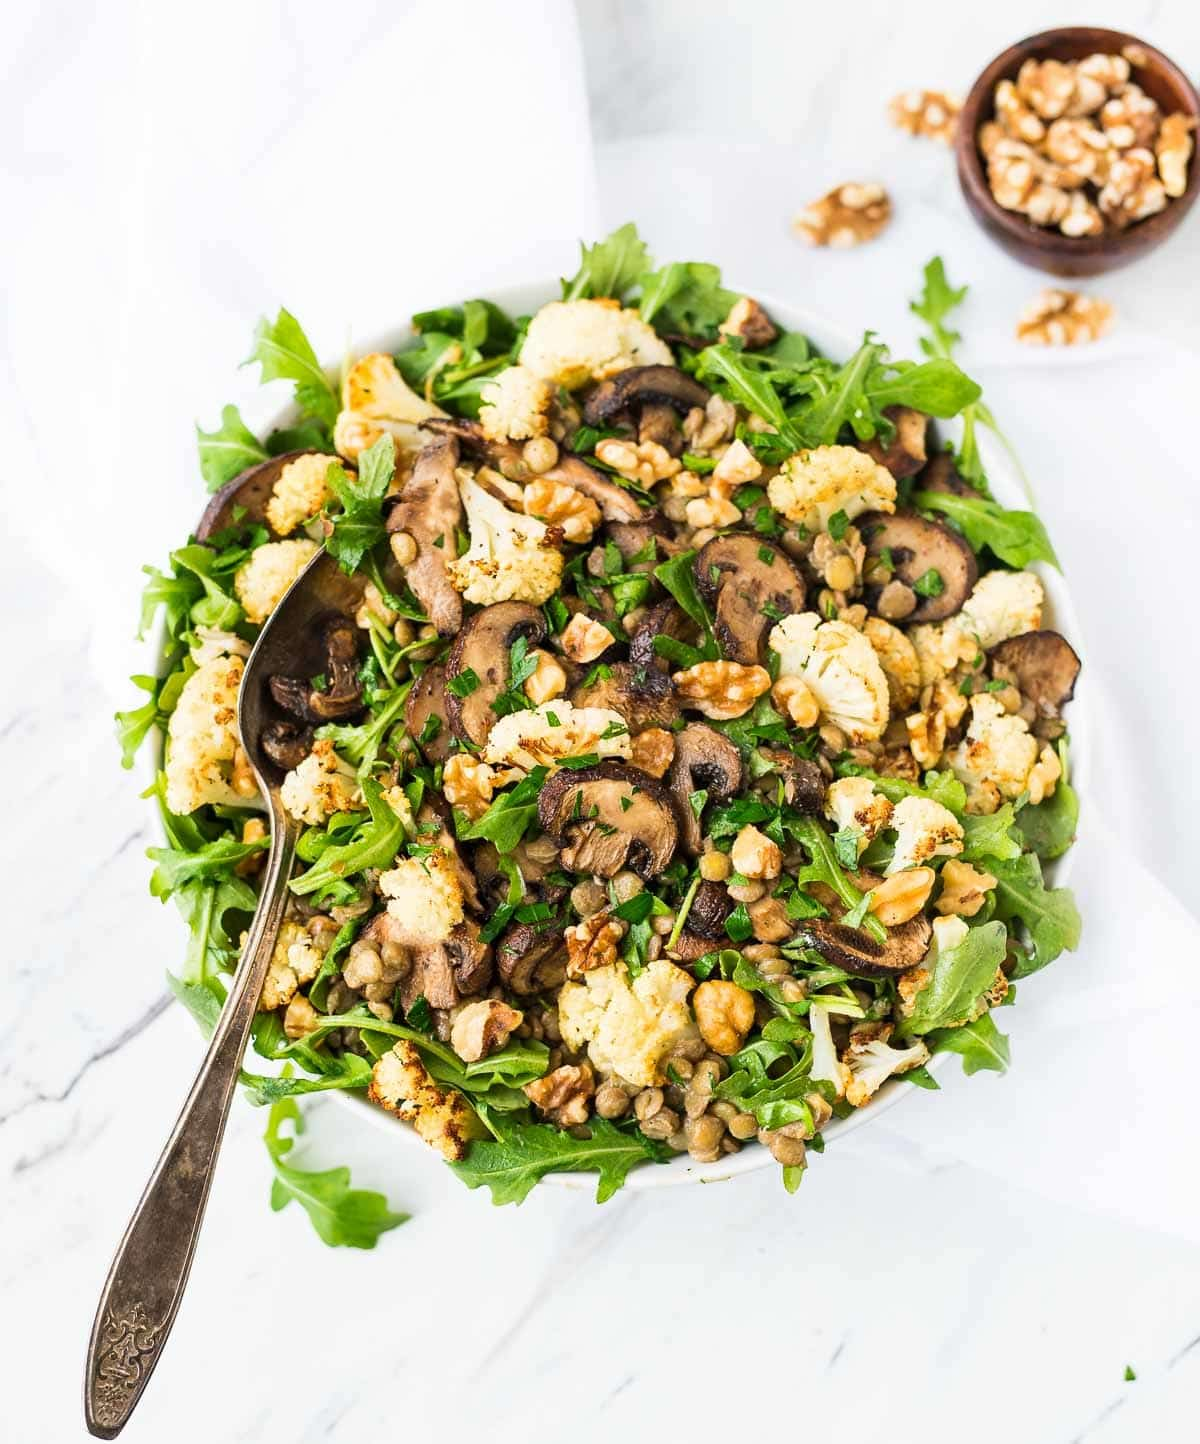 Lentil Salad with Roasted Cauliflower and Mushrooms. A healthy main dish salad that's easy to make, can be served warm or cold, and is PACKED with flavor. Great for a filling lunch or simple side. {vegan, gluten free} Recipe at wellplated.com | @wellplated